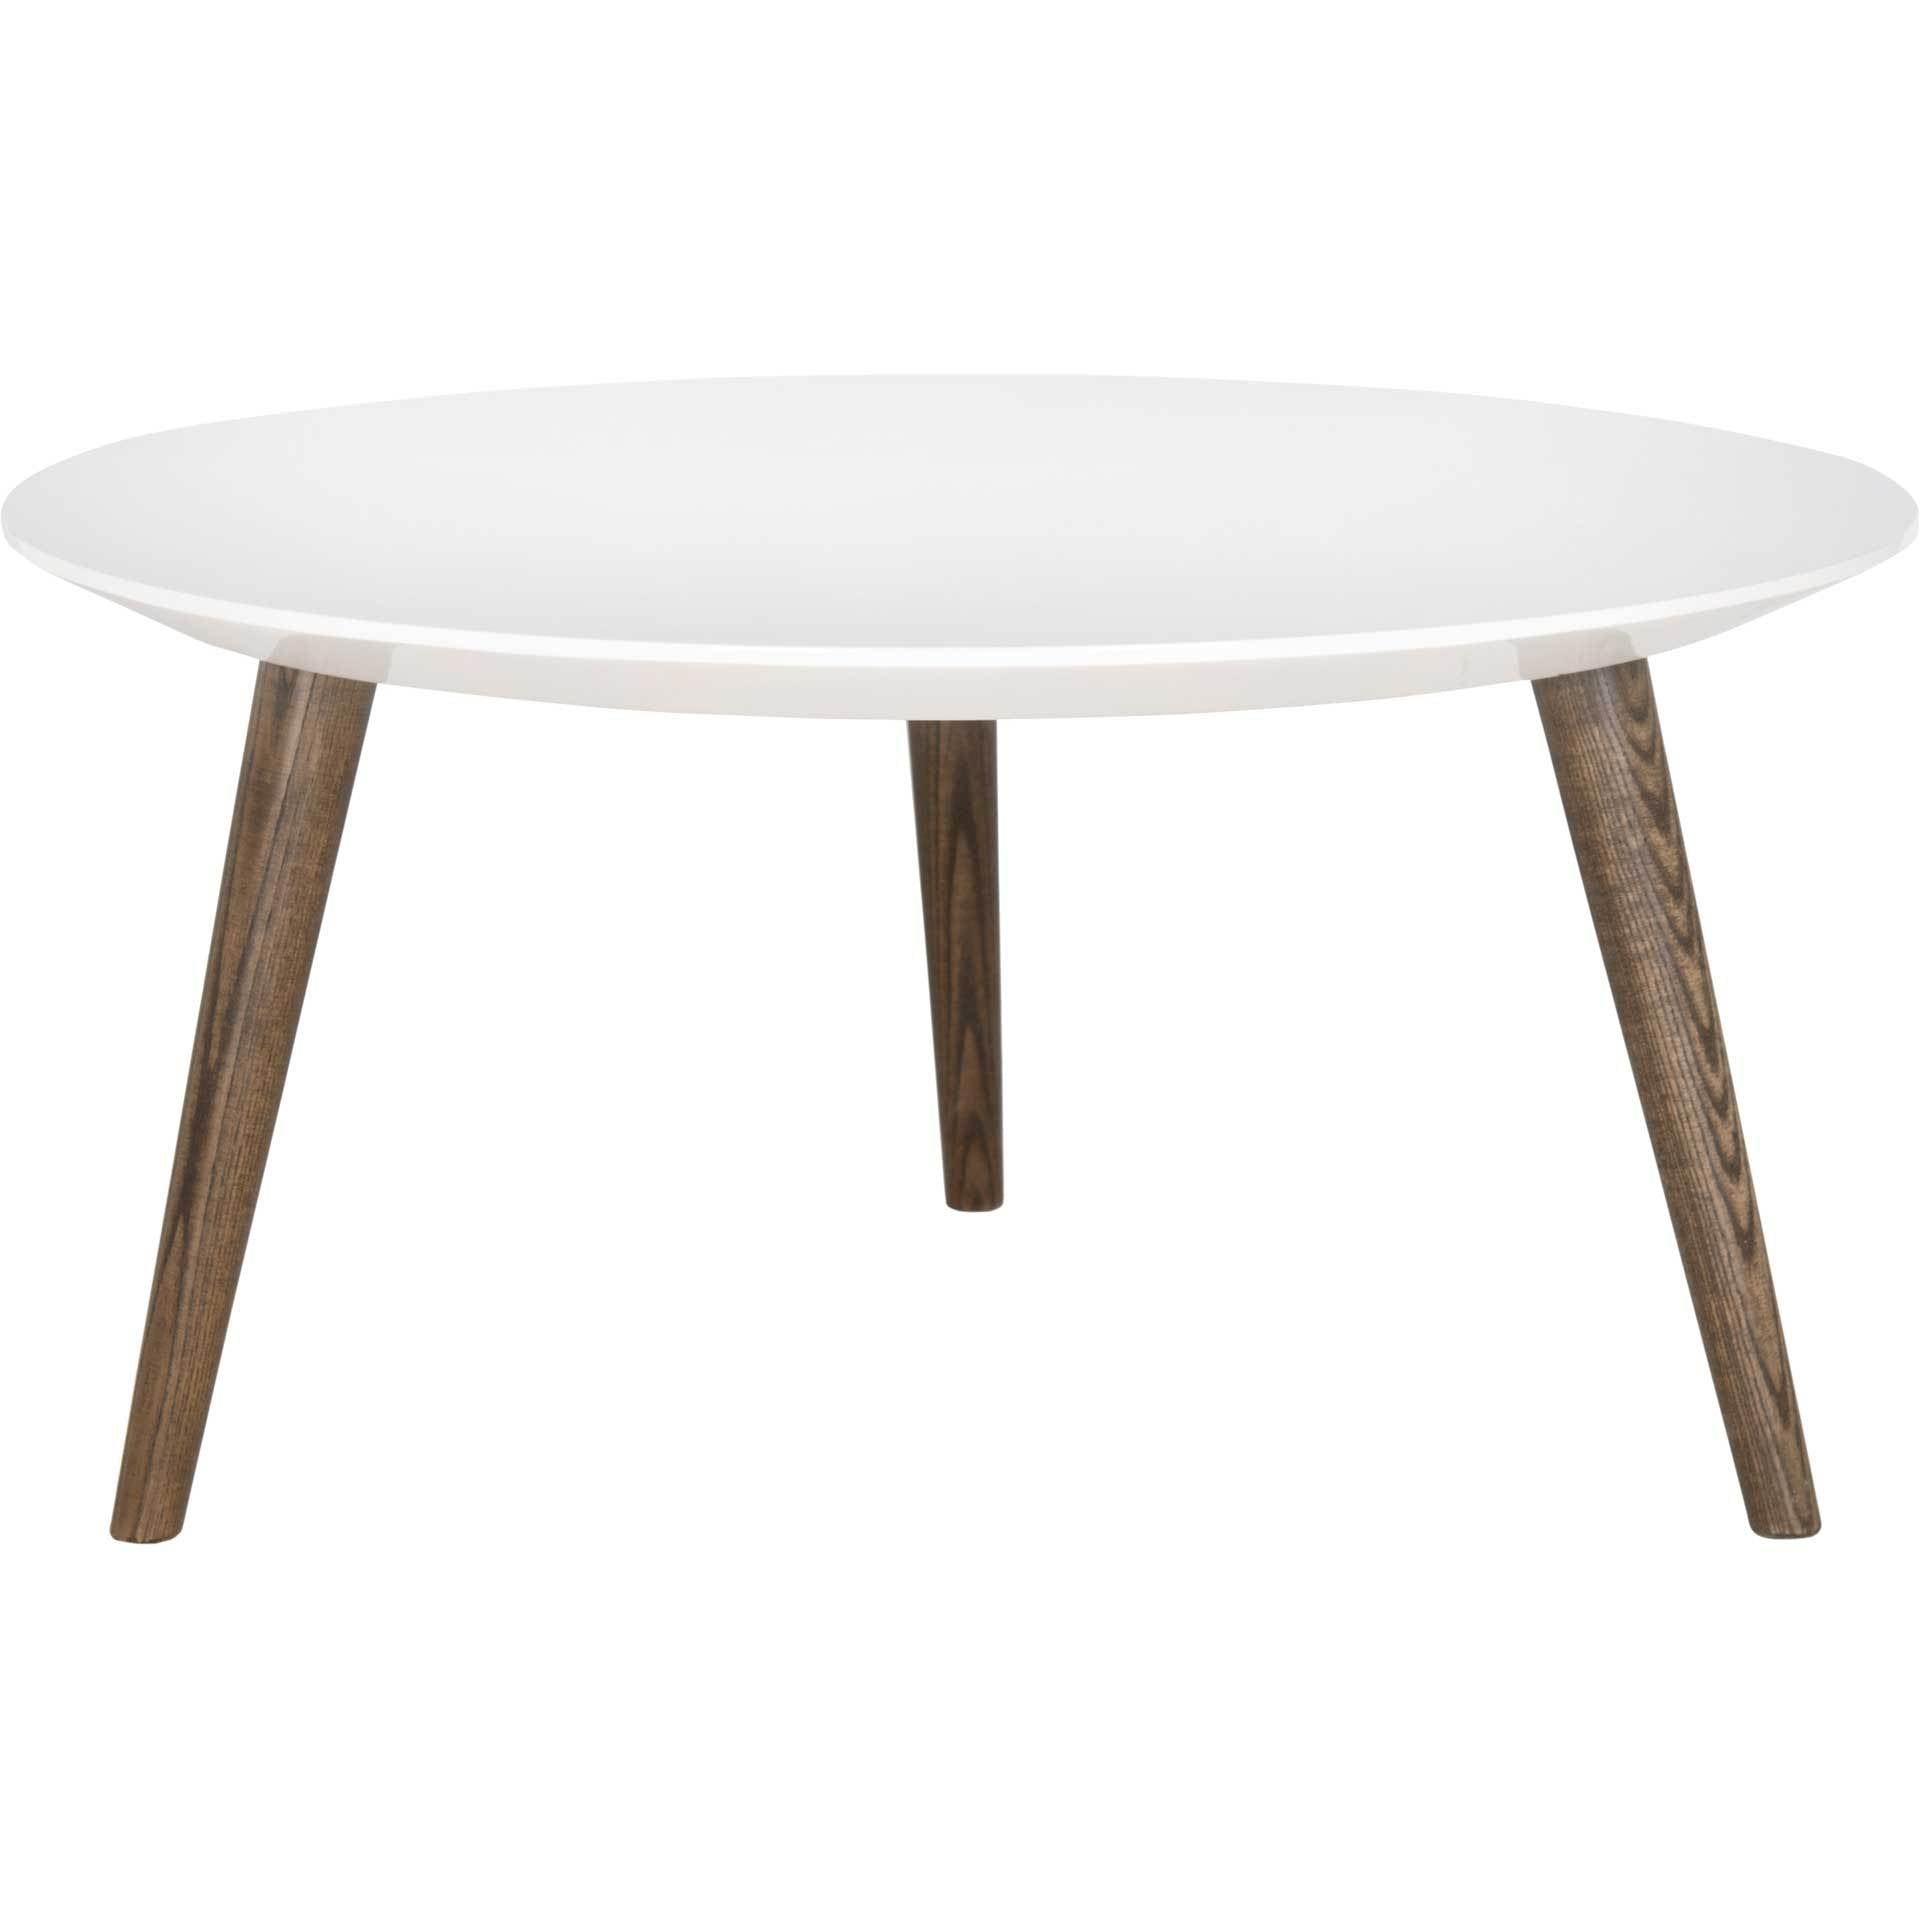 Jocelyn Round Lacquer Accent Table